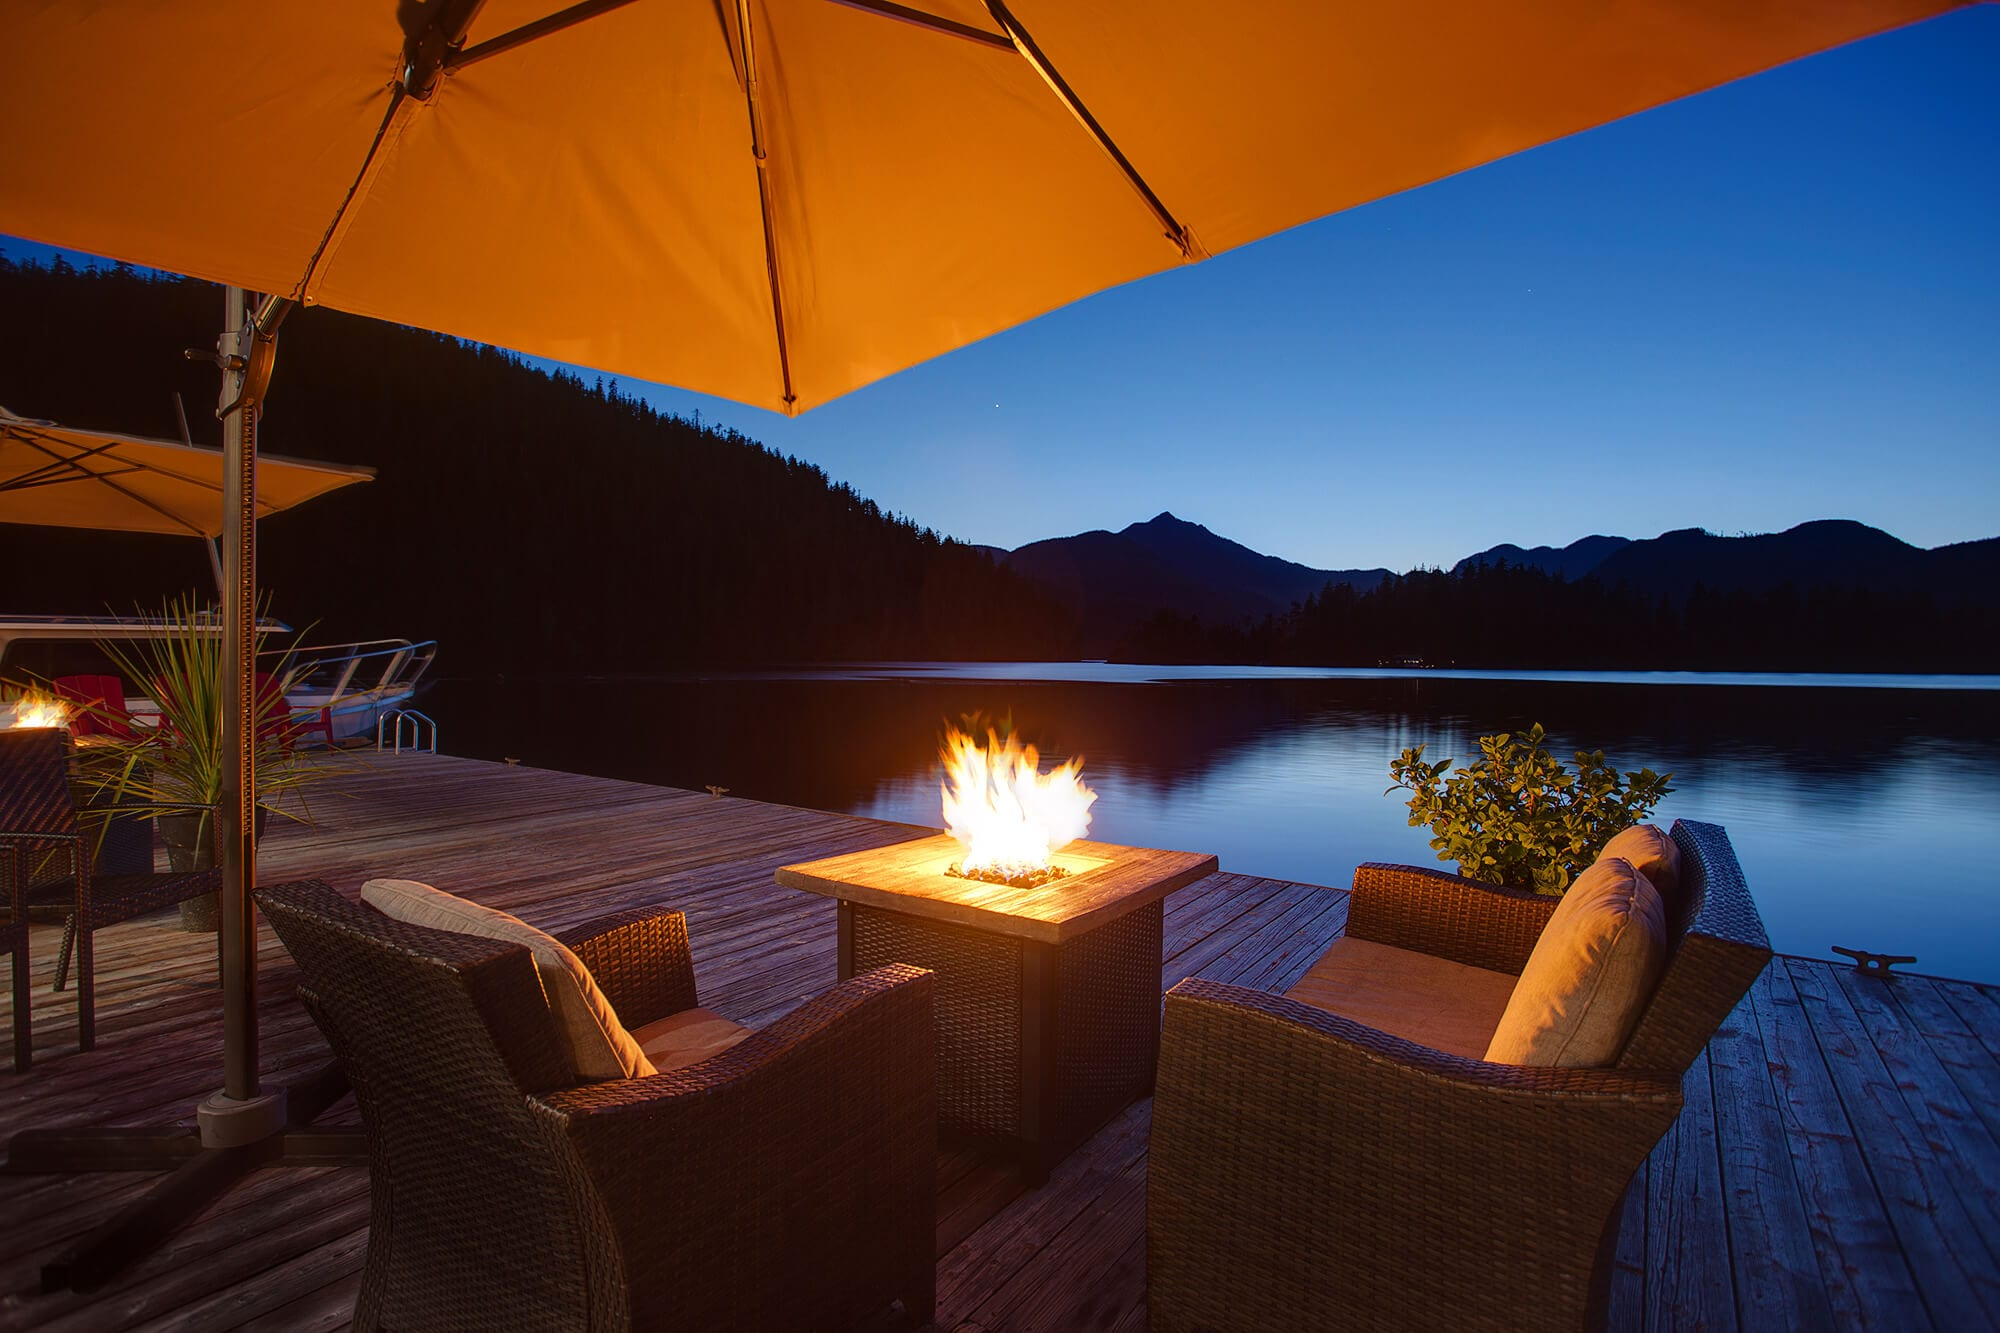 Patio furniture on boat dock at night.